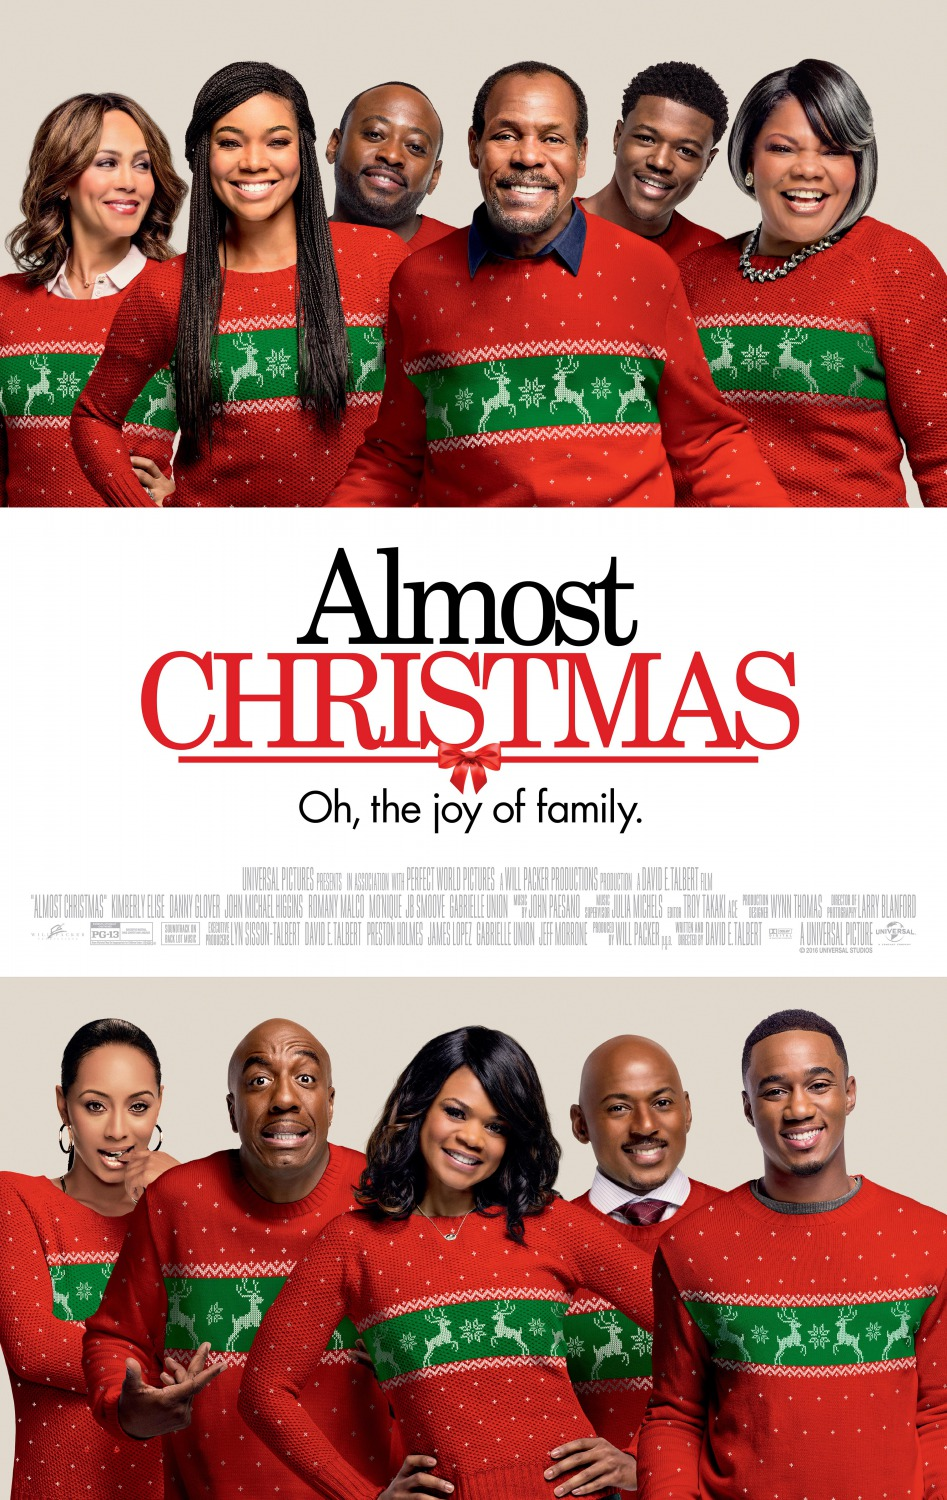 Almost Christmas Movie – Character Posters : Teaser Trailer